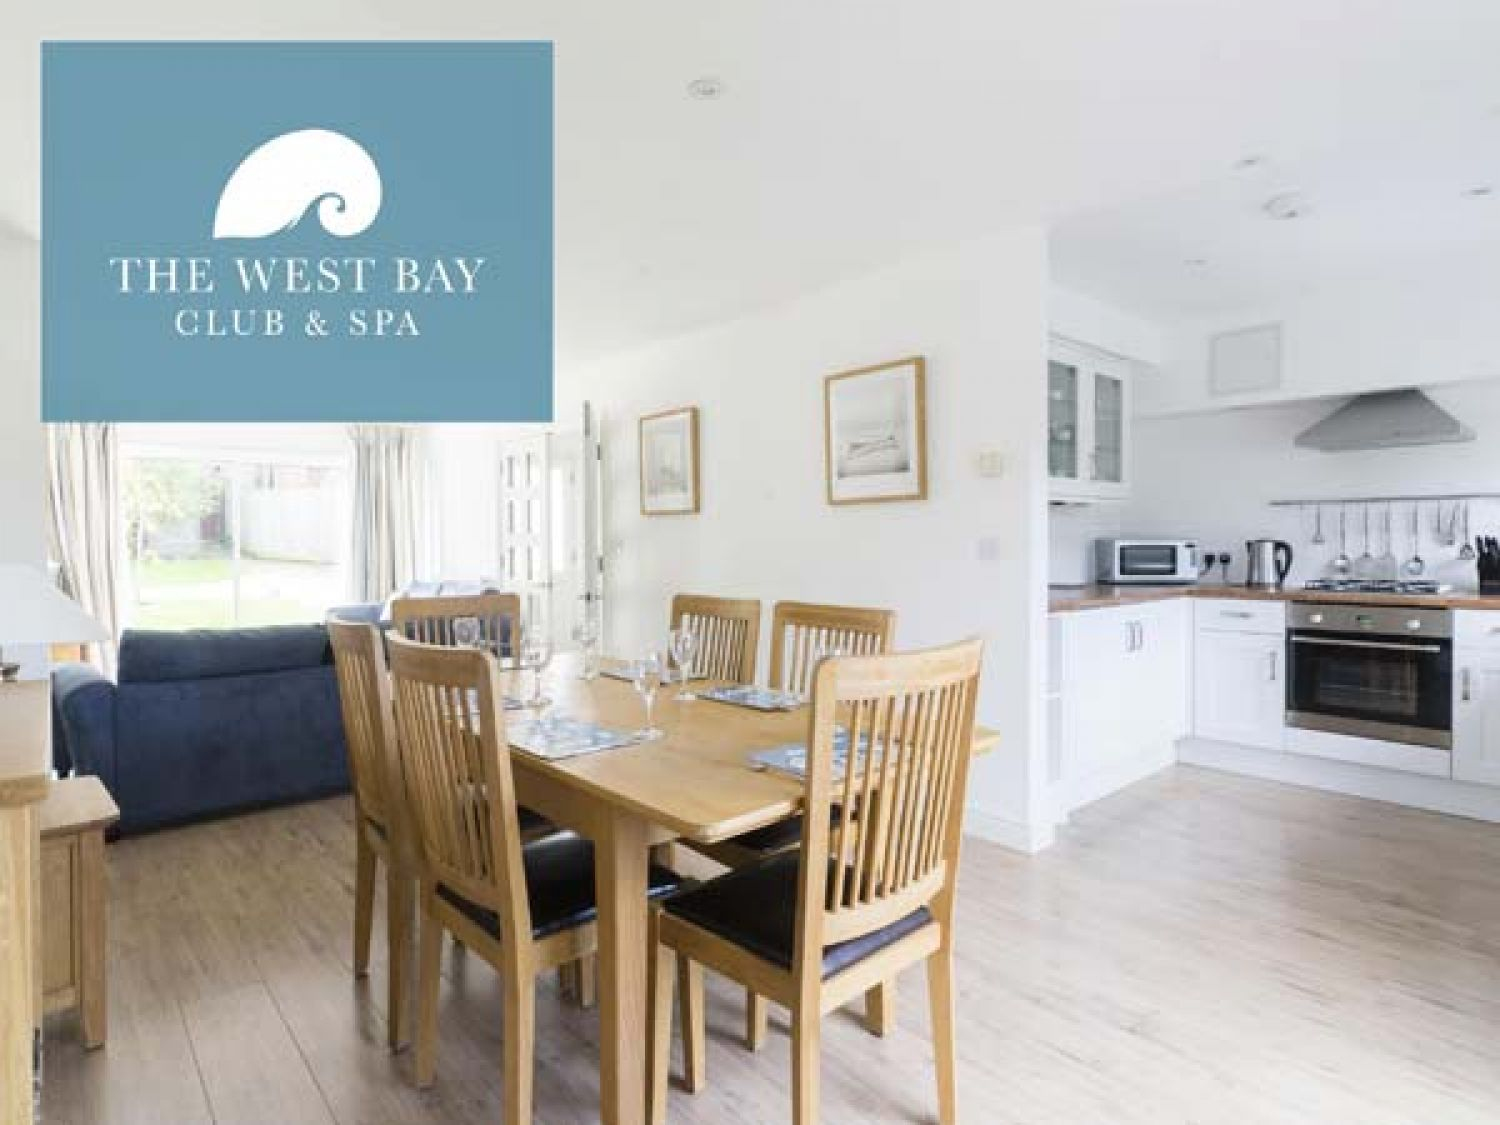 Three bedroom house for 5 at The West Bay Club & Spa - Isle of Wight & Hampshire - 943923 - photo 1